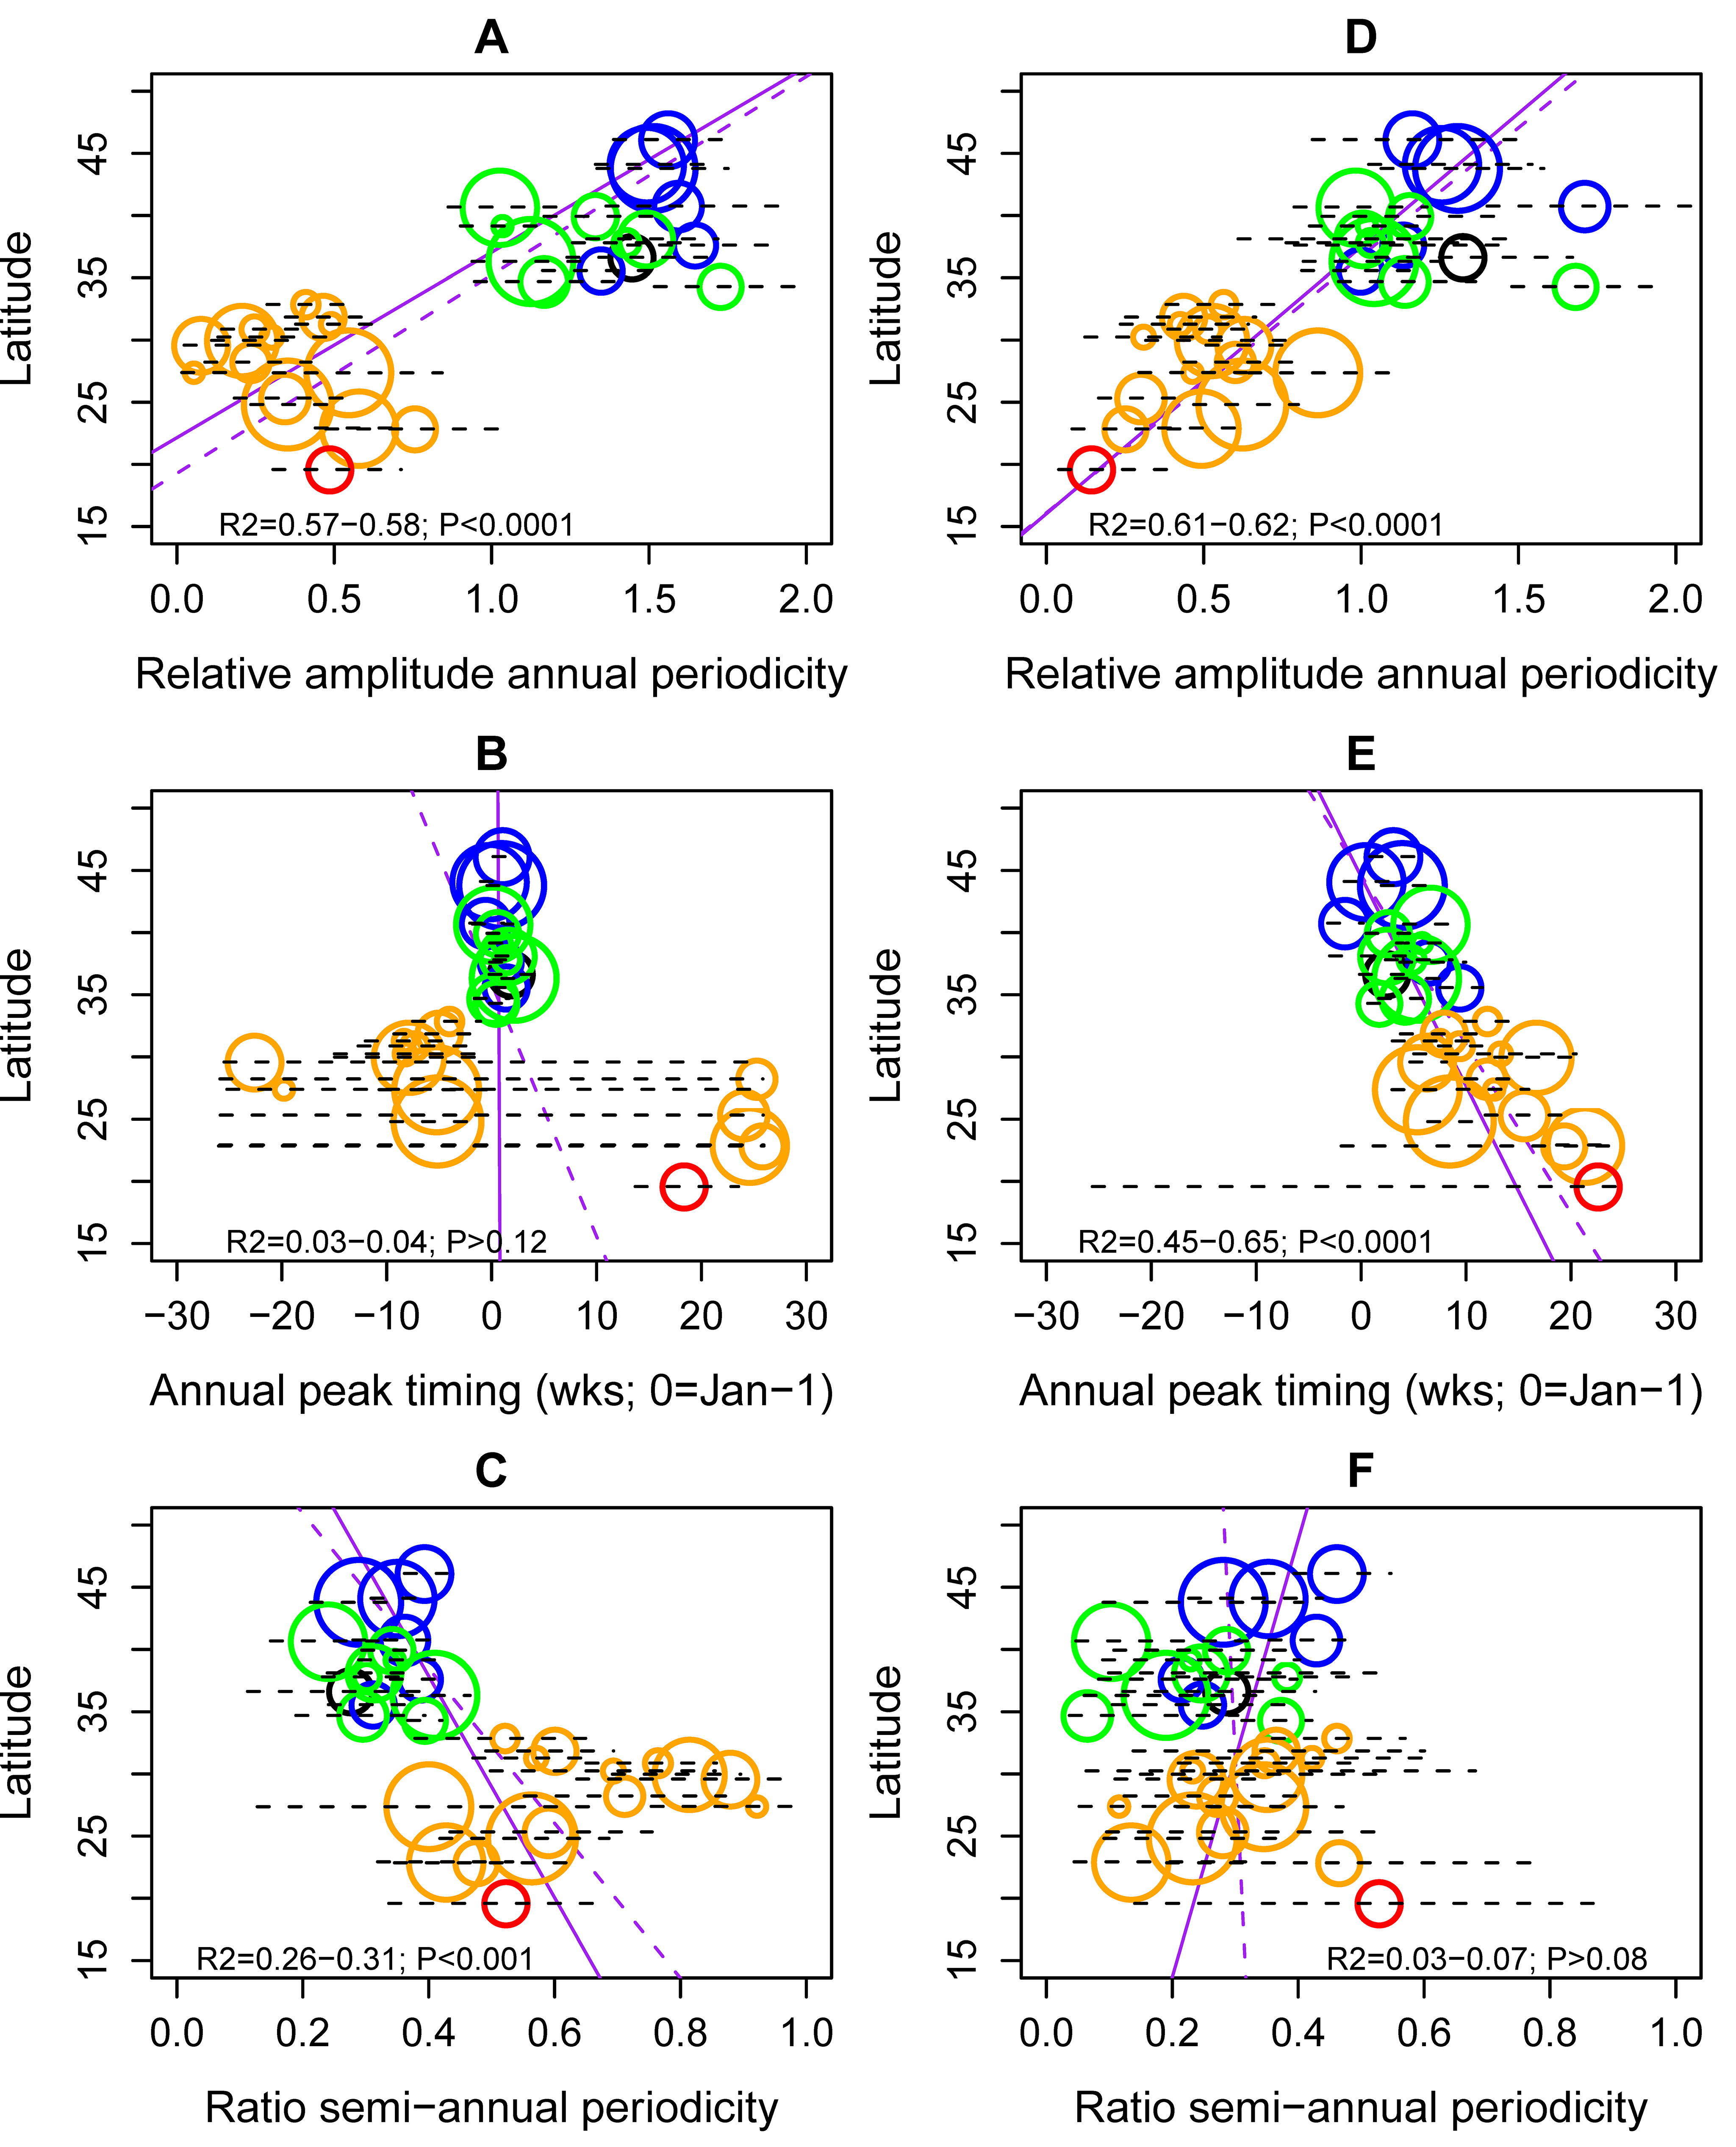 Latitudinal gradients in seasonality of influenza A and B epidemics in China.